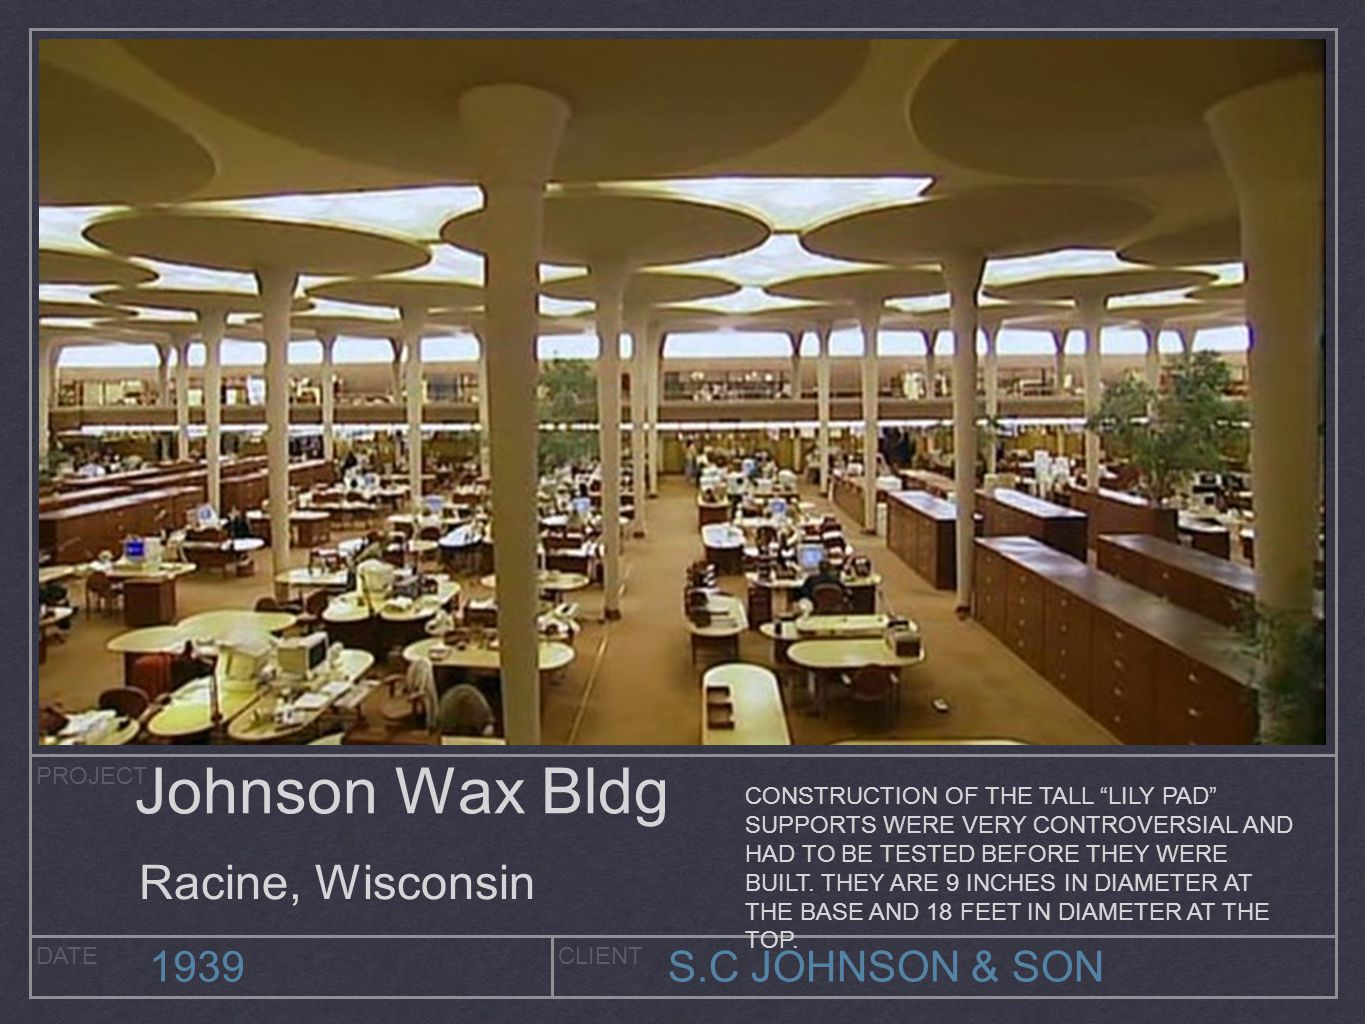 PROJECT DATECLIENT 1939S.C JOHNSON & SON Johnson Wax Bldg Racine, Wisconsin CONSTRUCTION OF THE TALL LILY PAD SUPPORTS WERE VERY CONTROVERSIAL AND HAD TO BE TESTED BEFORE THEY WERE BUILT.